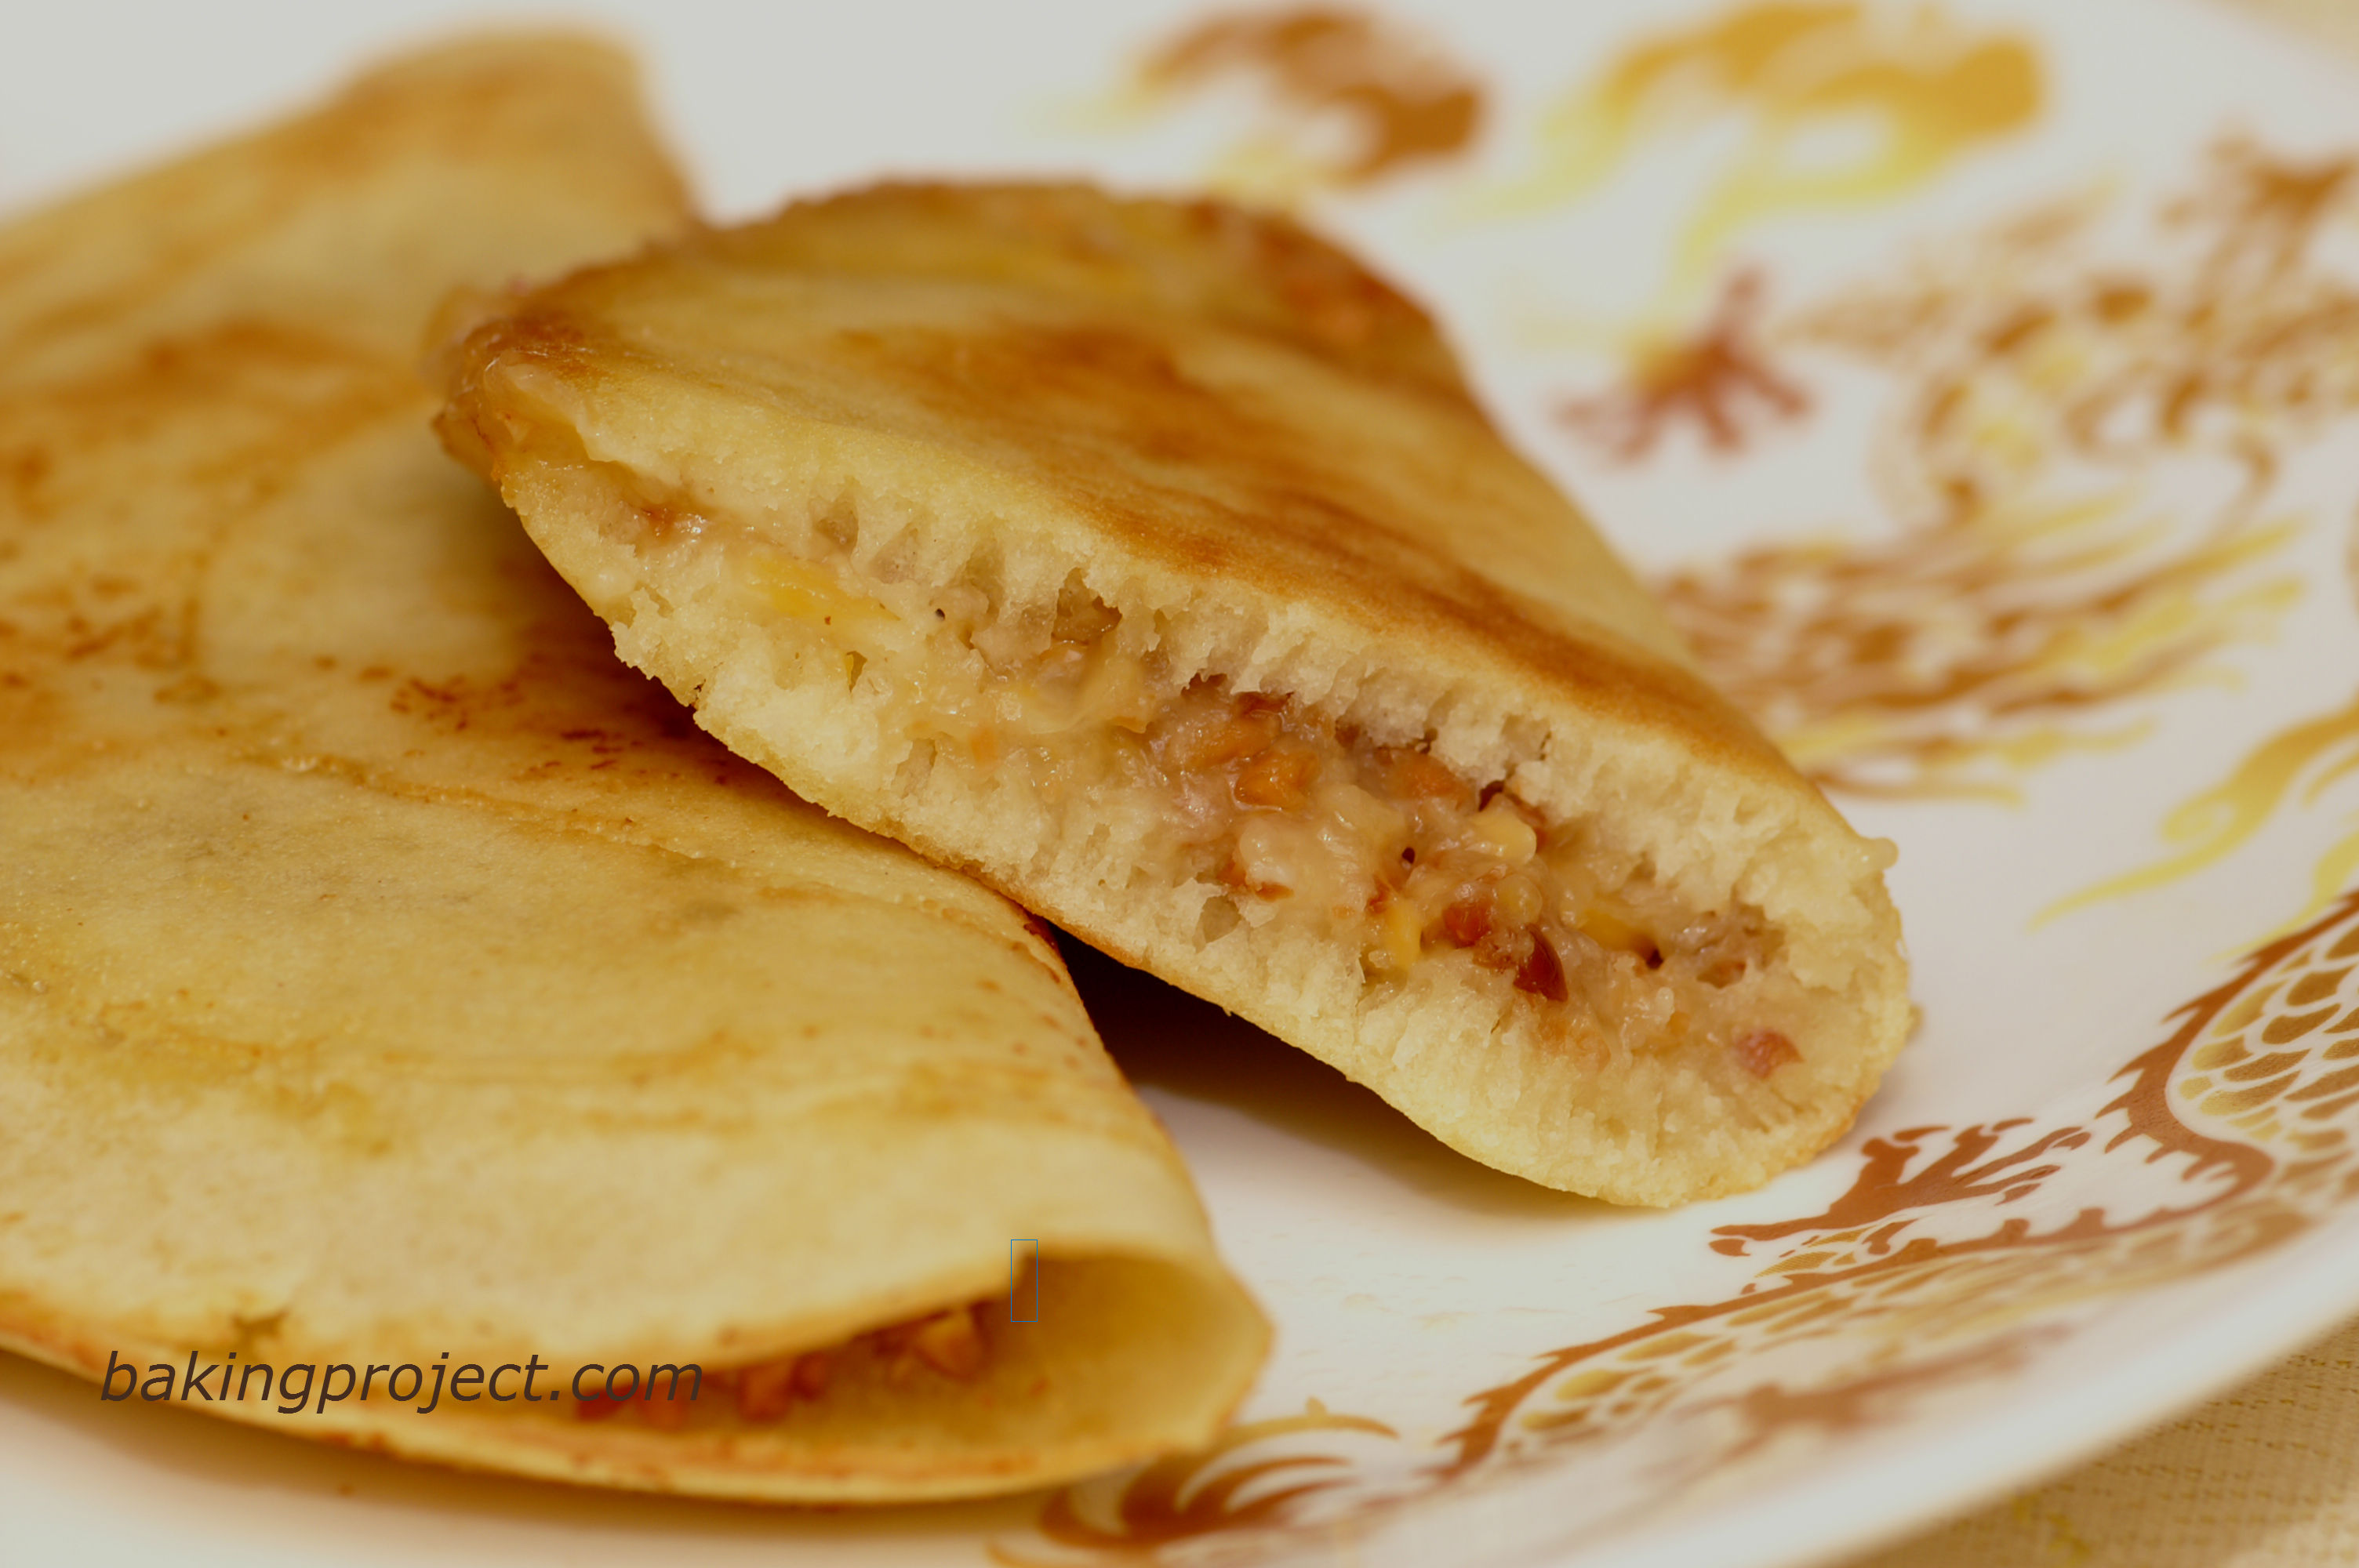 Apam Balik Turnover Pancake 171 Baking Project